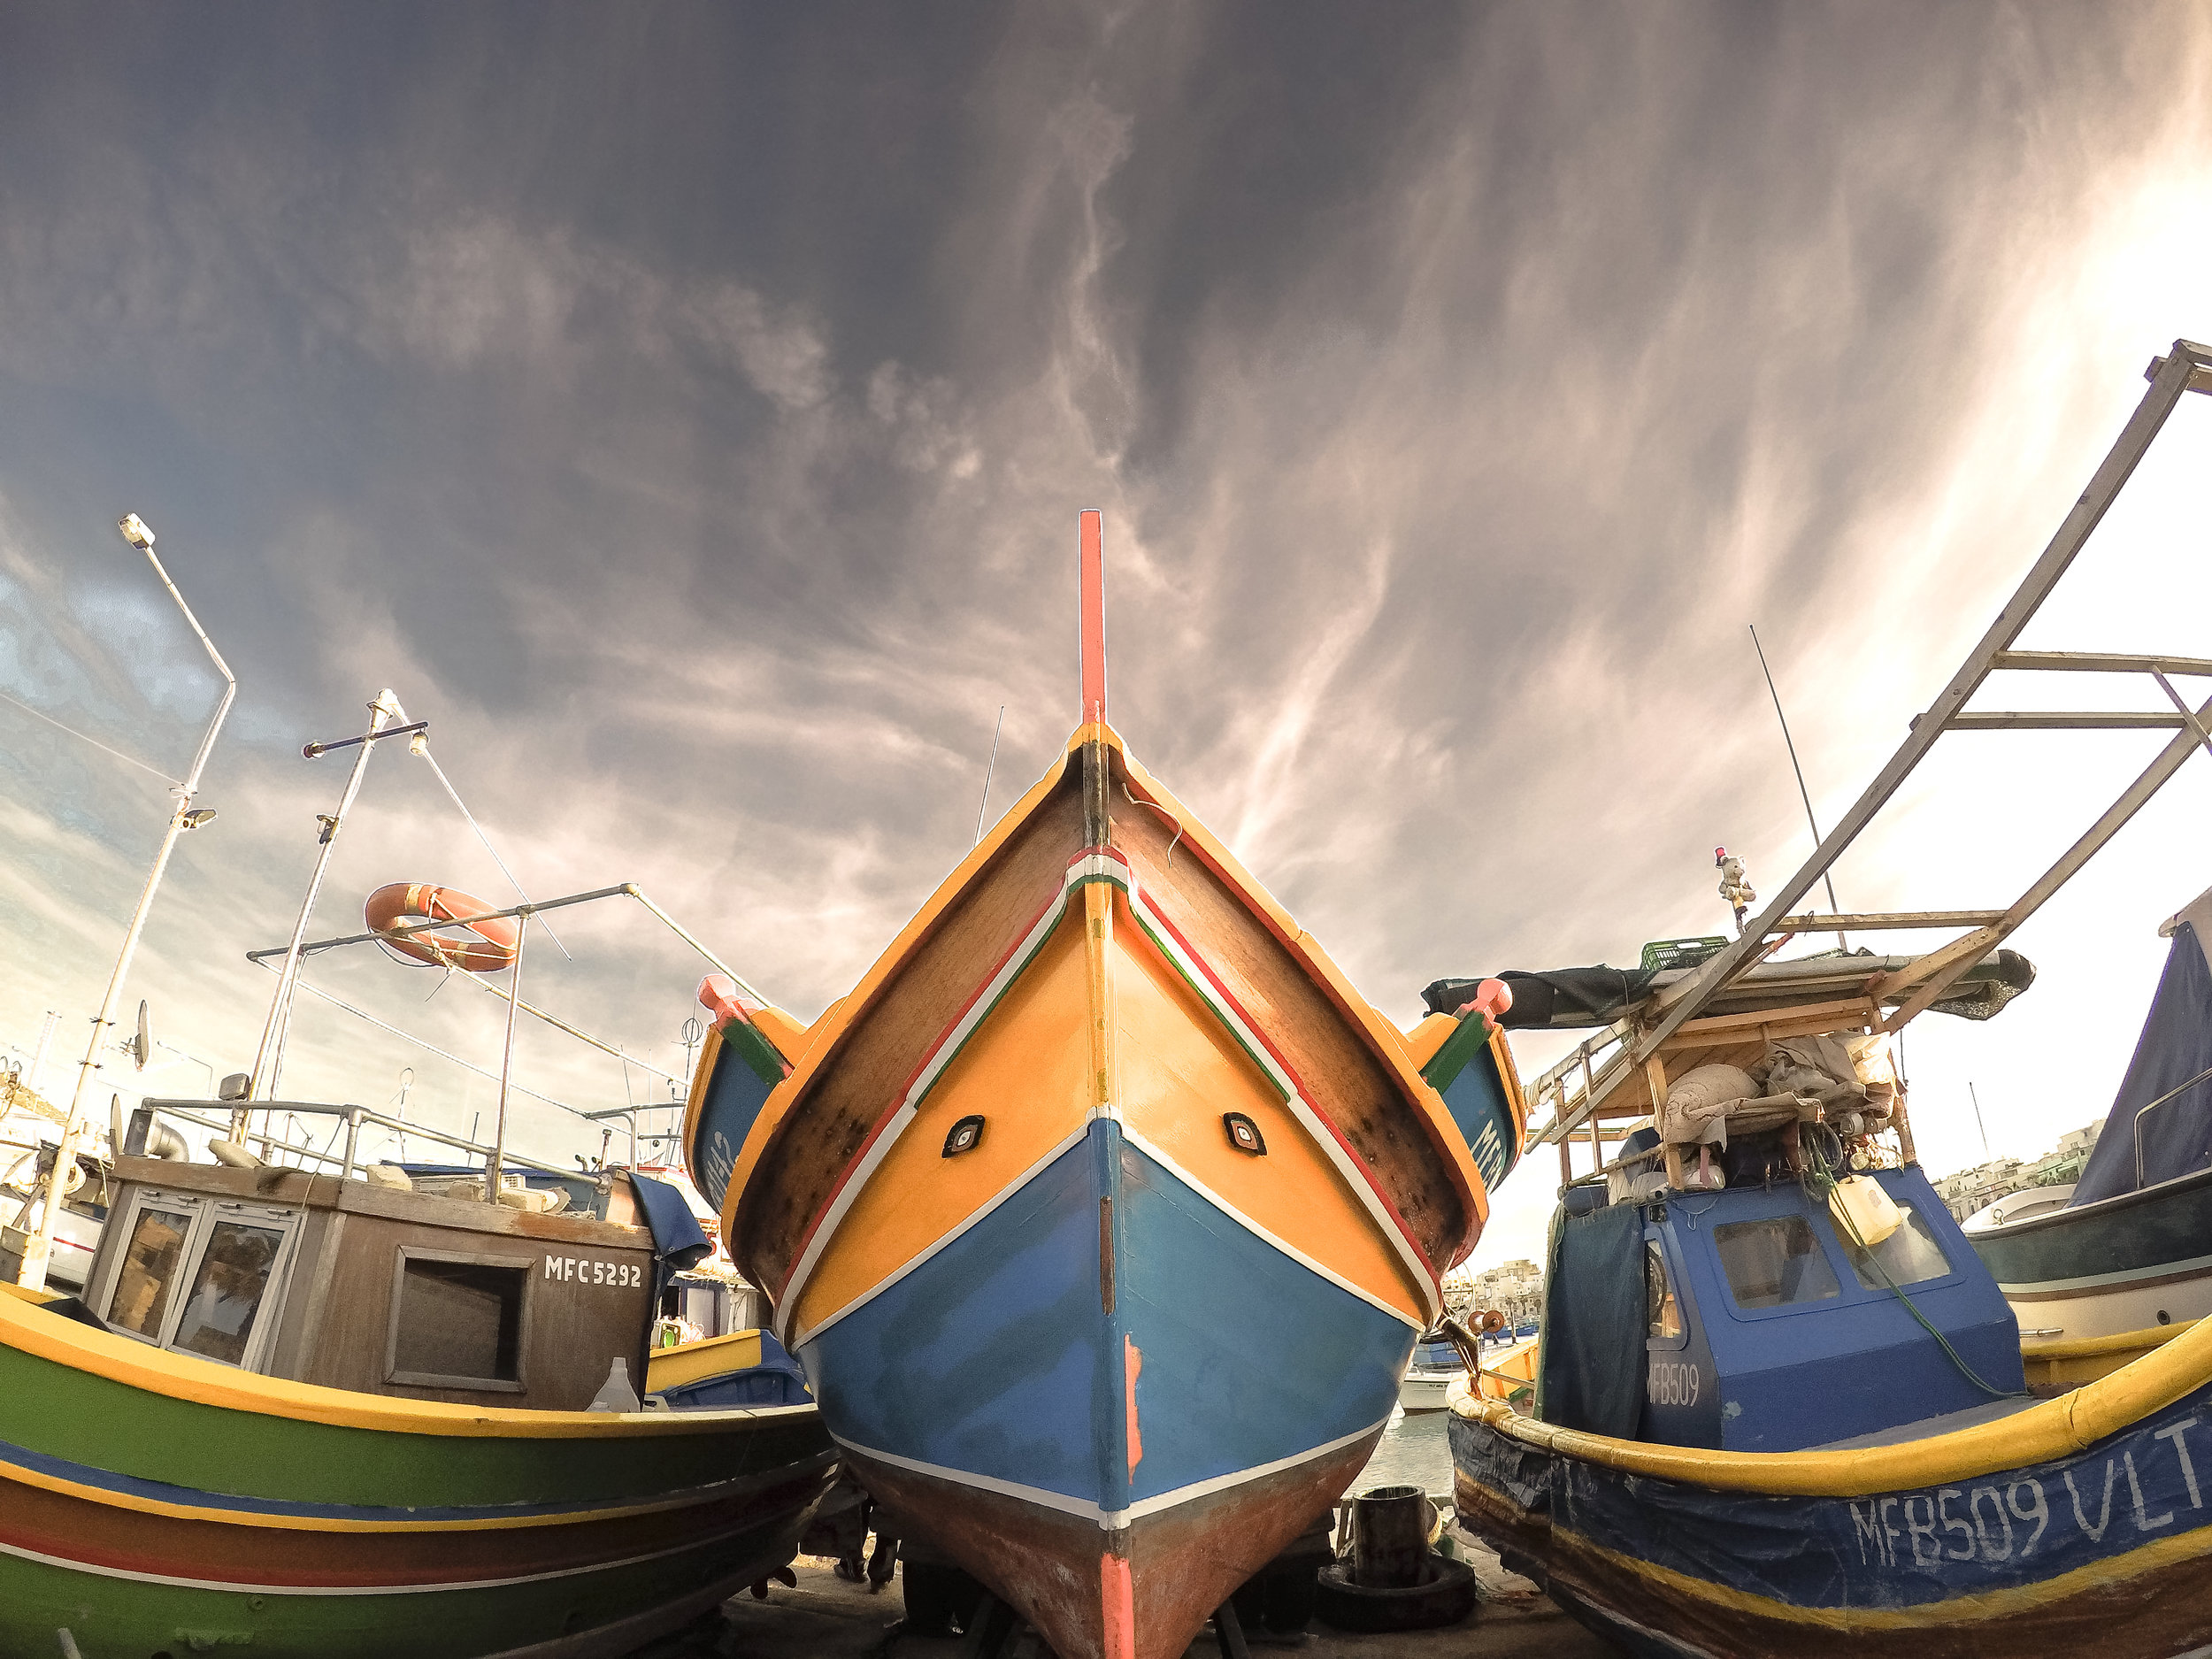 Maltese Boats   Traditional Fishing Village   Mediterranean Sea   Marsaxlokk - Thinking About Appreciation For Quality In Malta   Malta, Europe   DoLessGetMoreDone.com   - GoPro Minimal Travel Documentary Photography - search for Liveability   Sustainability